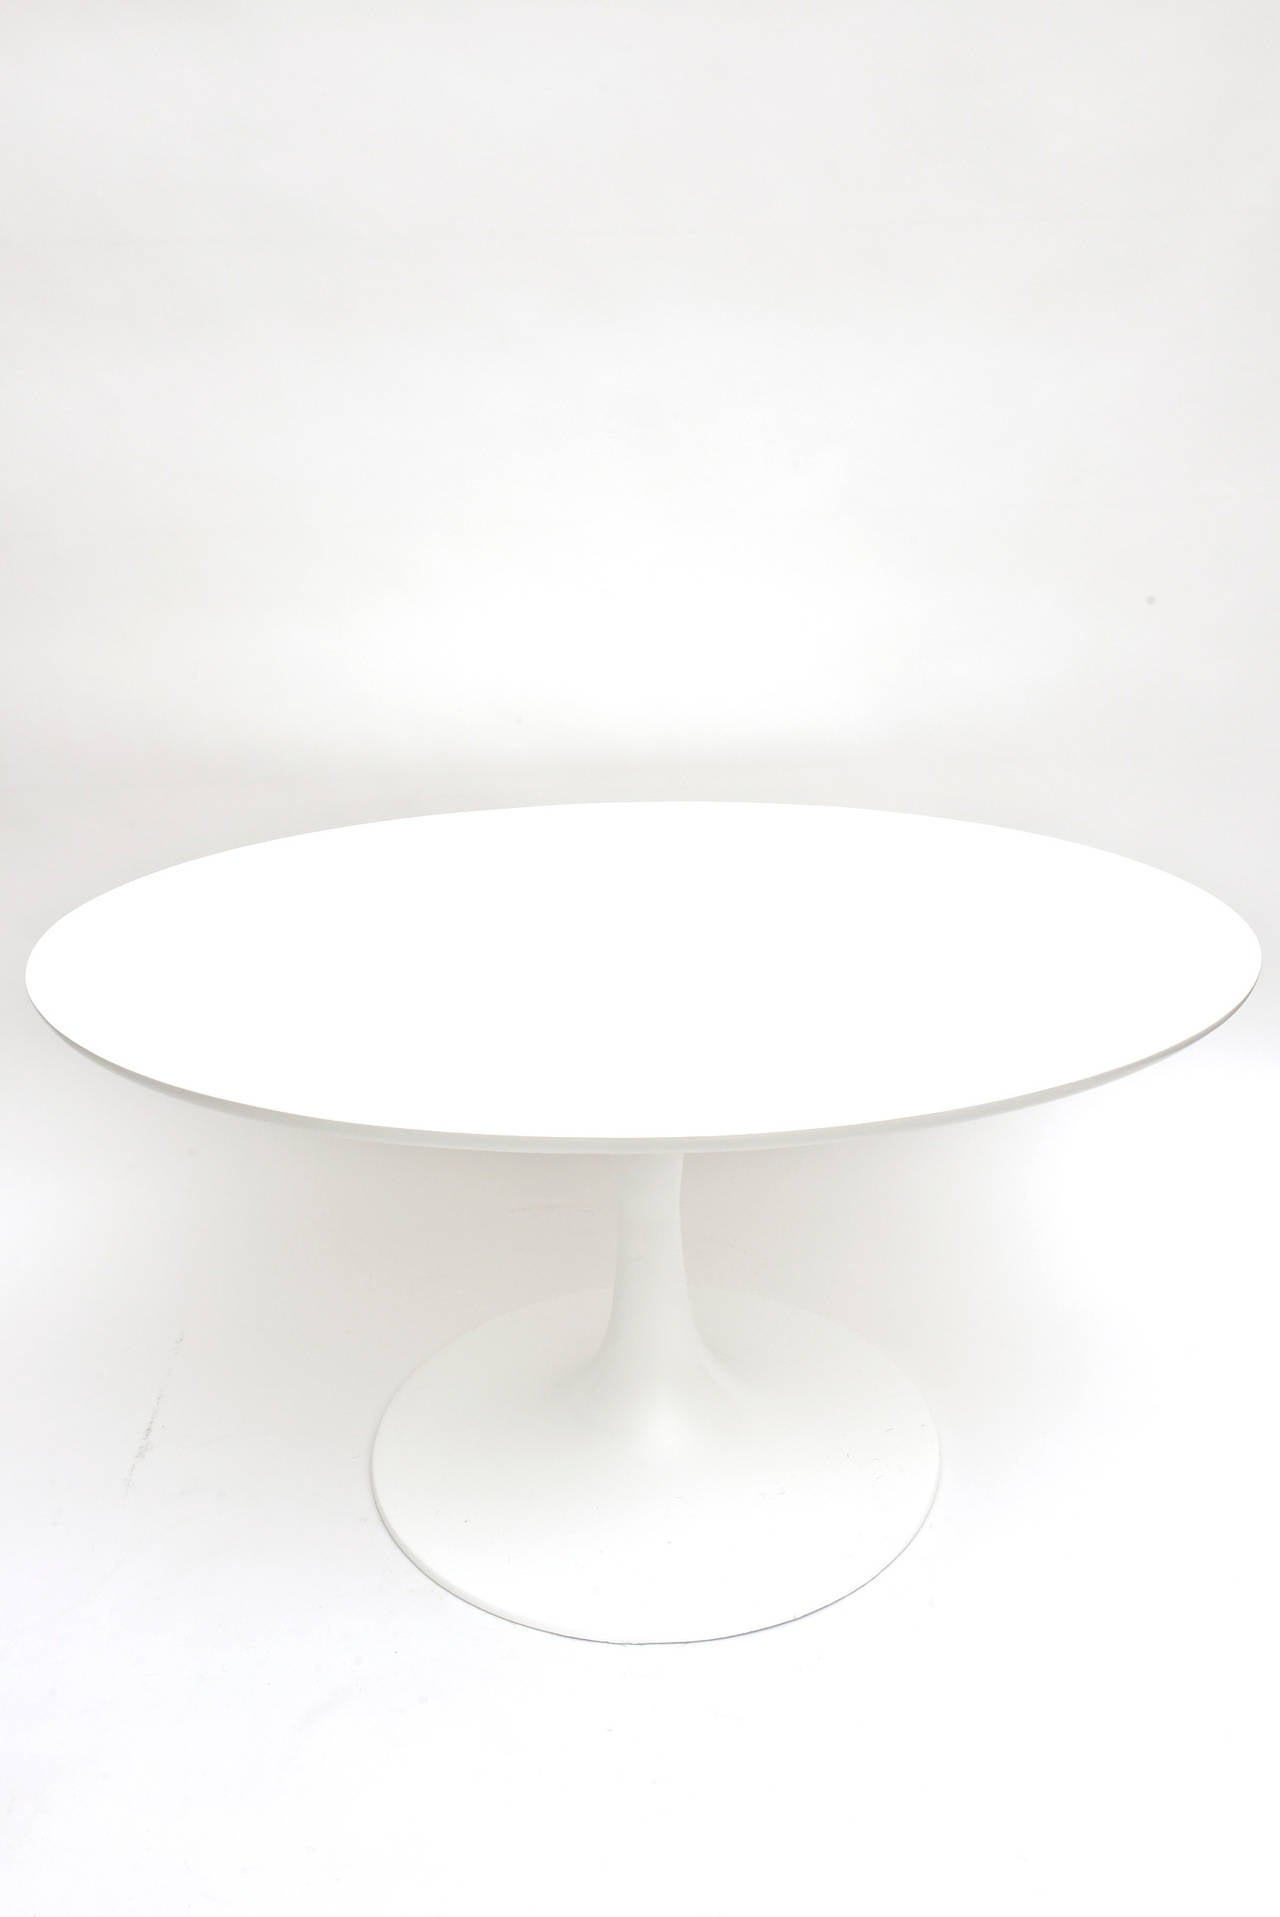 vintage original eero saarinen for knoll oval low side or co